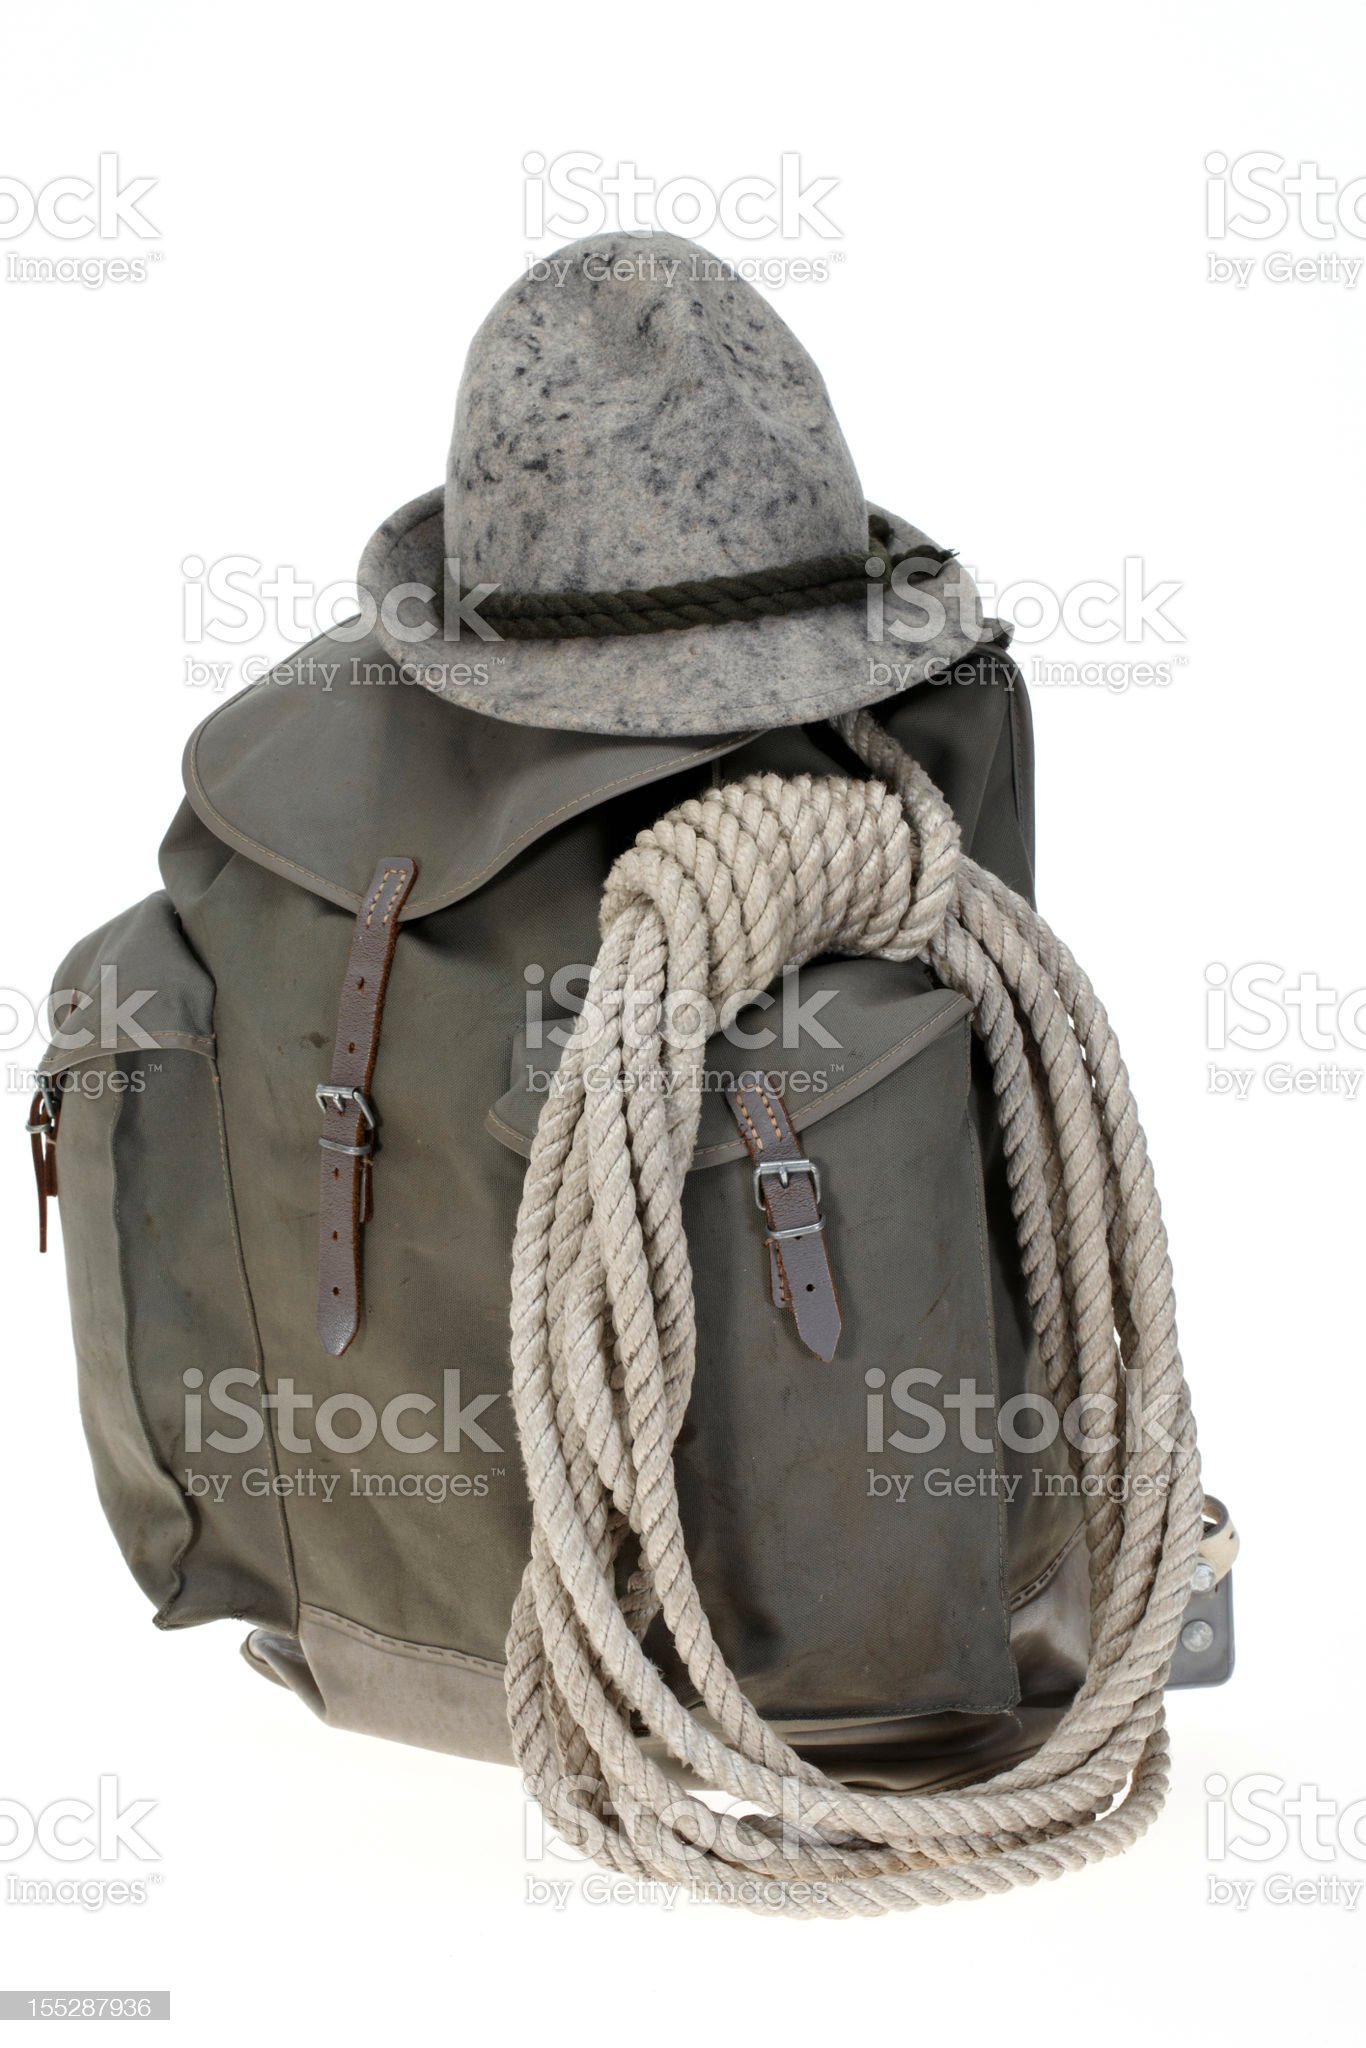 Vintage mountaineering backpack with hat royalty-free stock photo